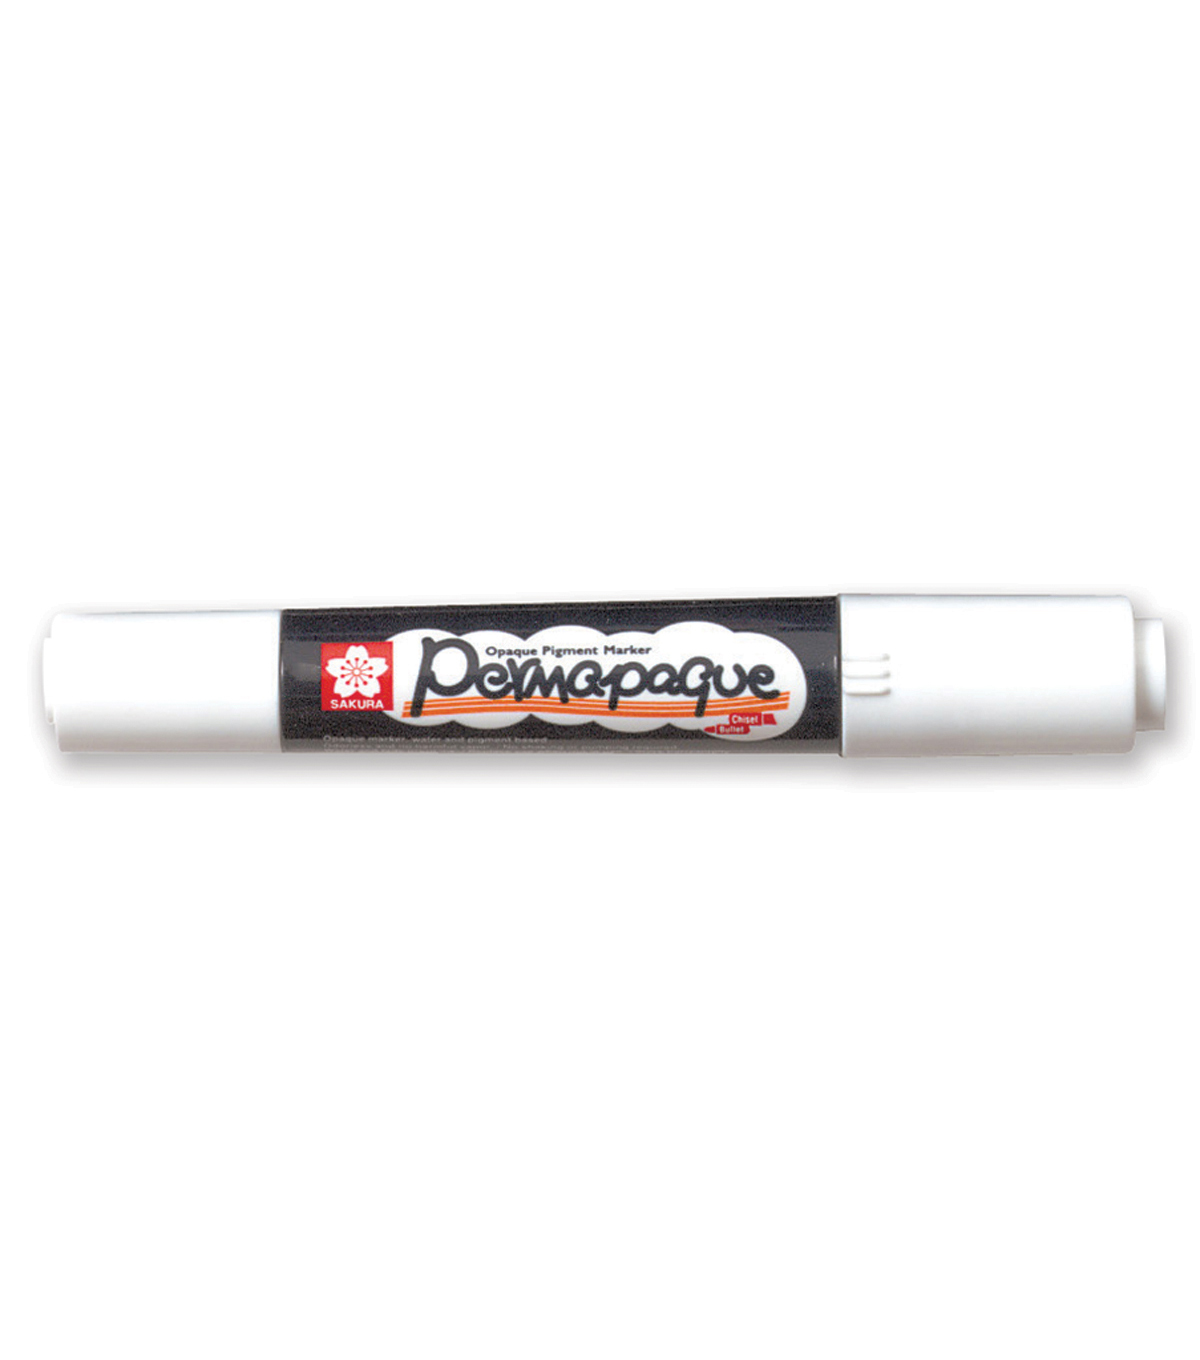 Sakura Permapaque Paint Marker Dual Point